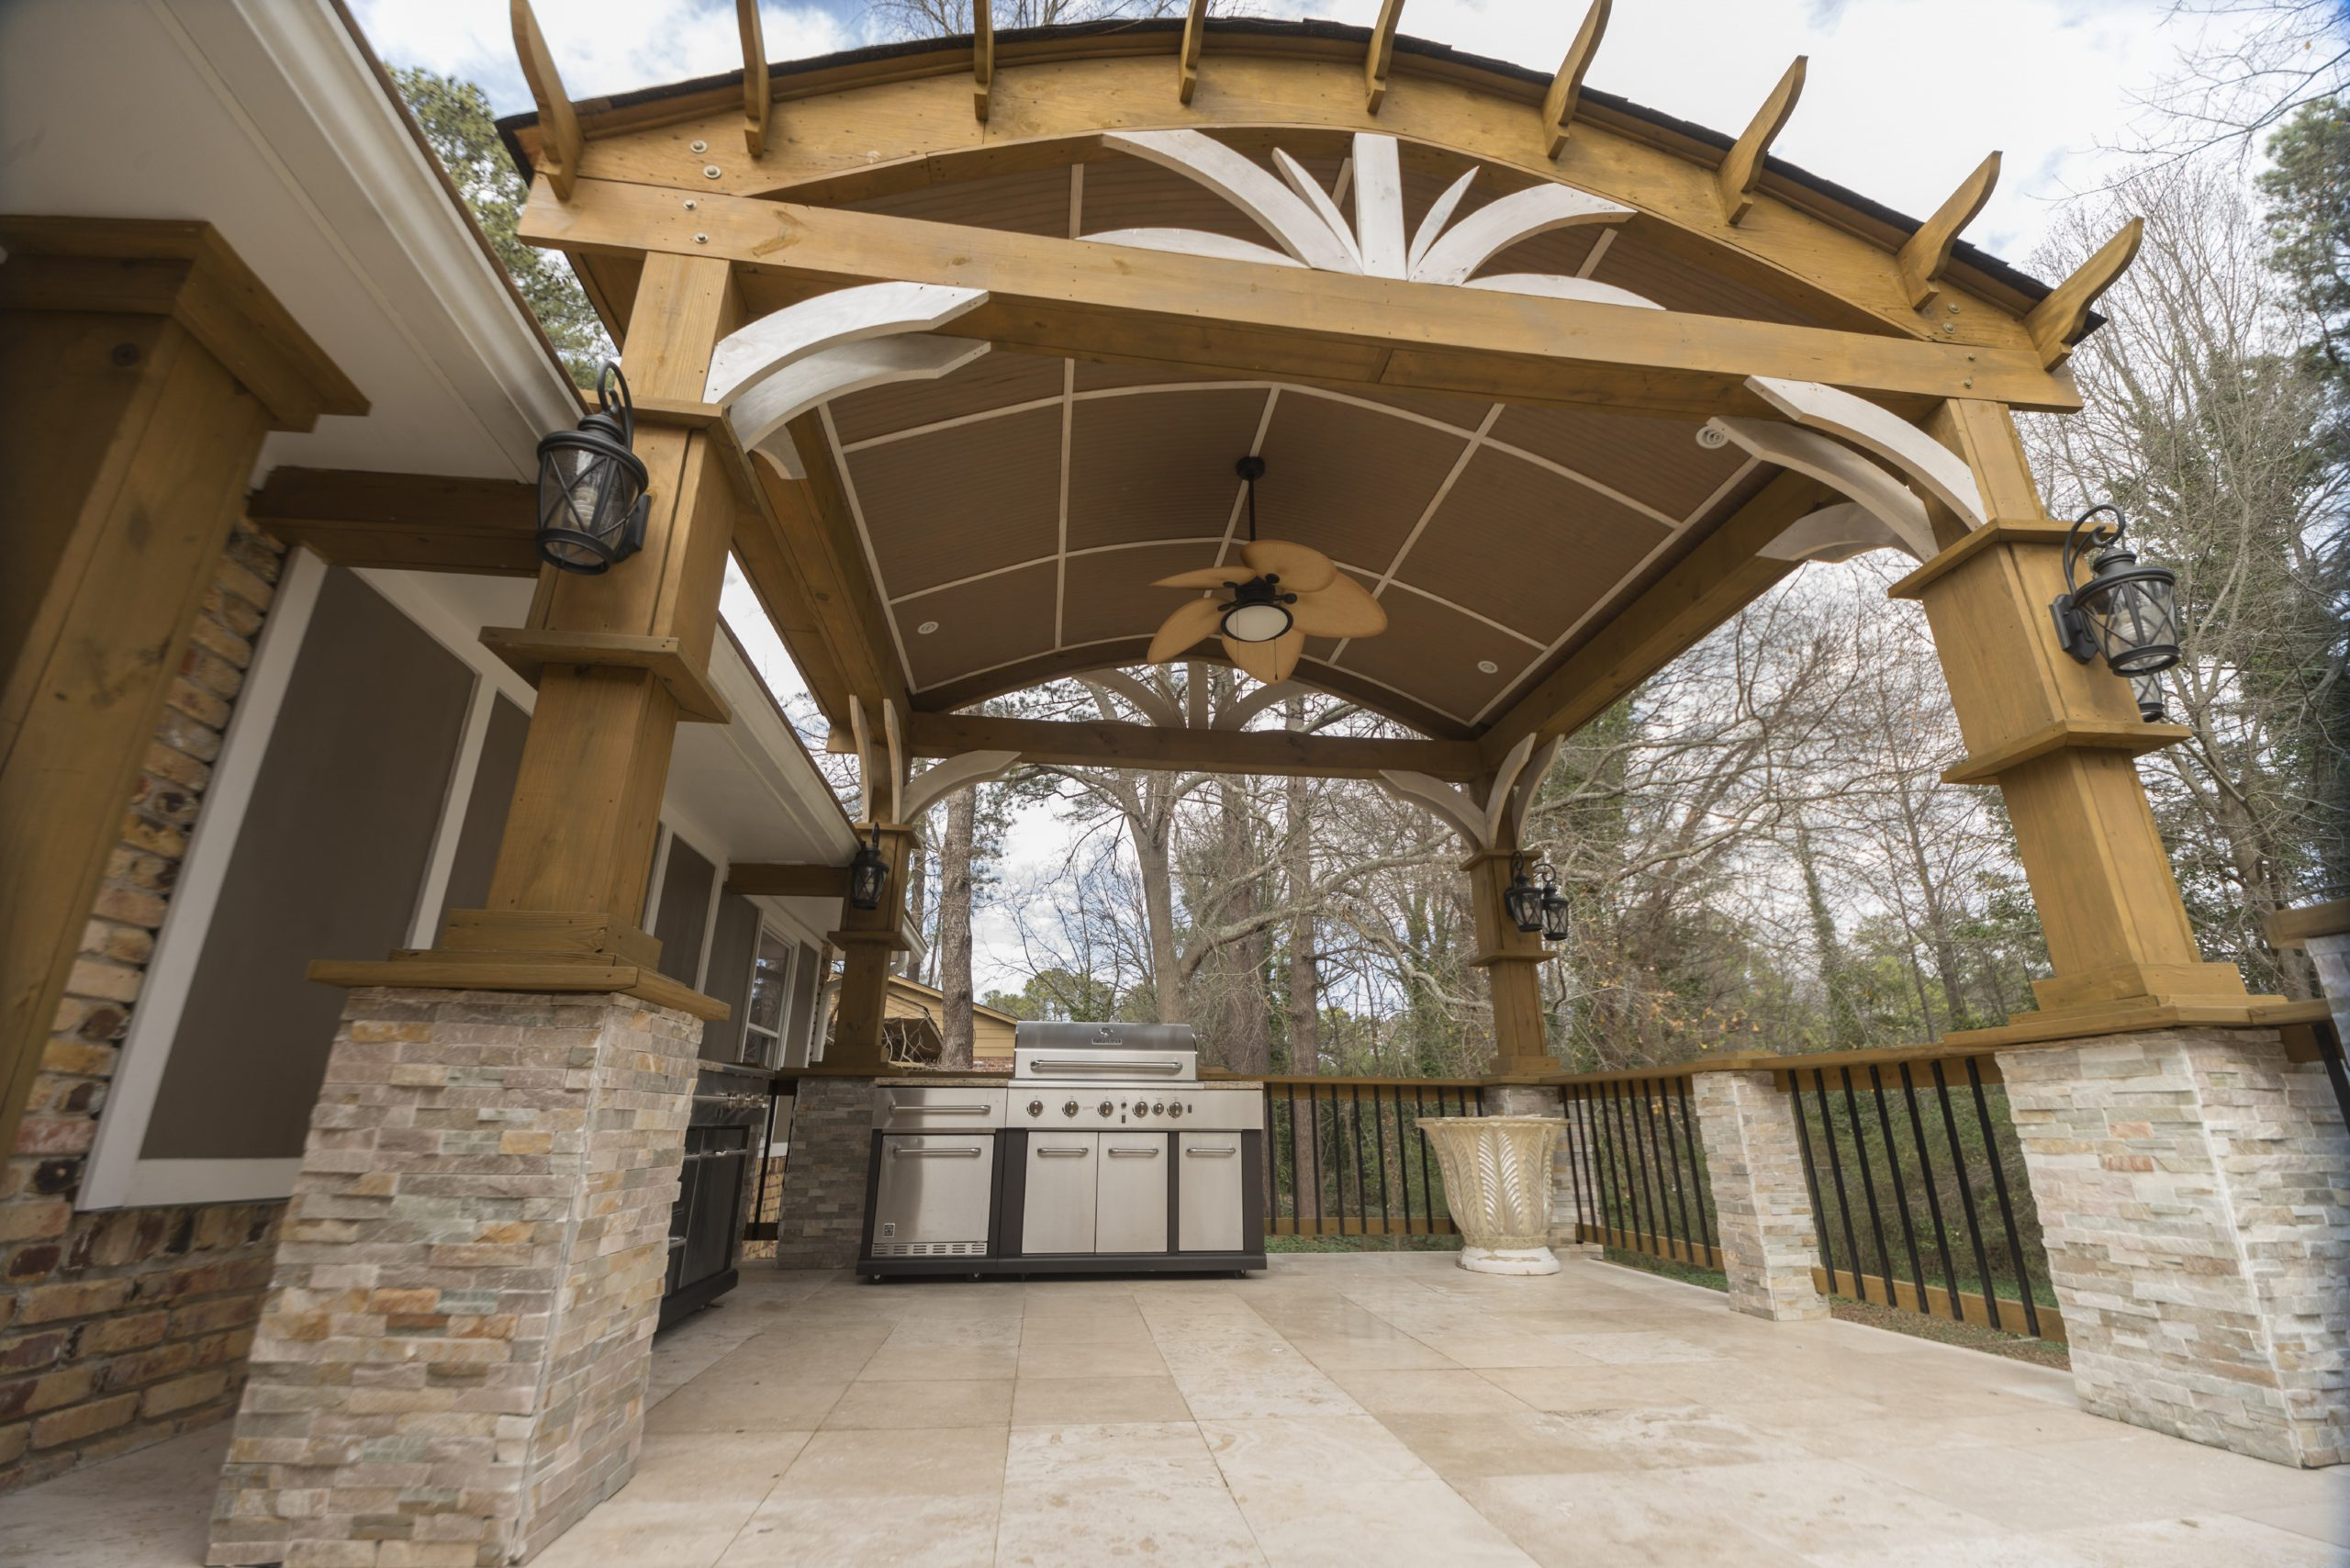 covered stone patio with ceiling fan over outdoor kitchen